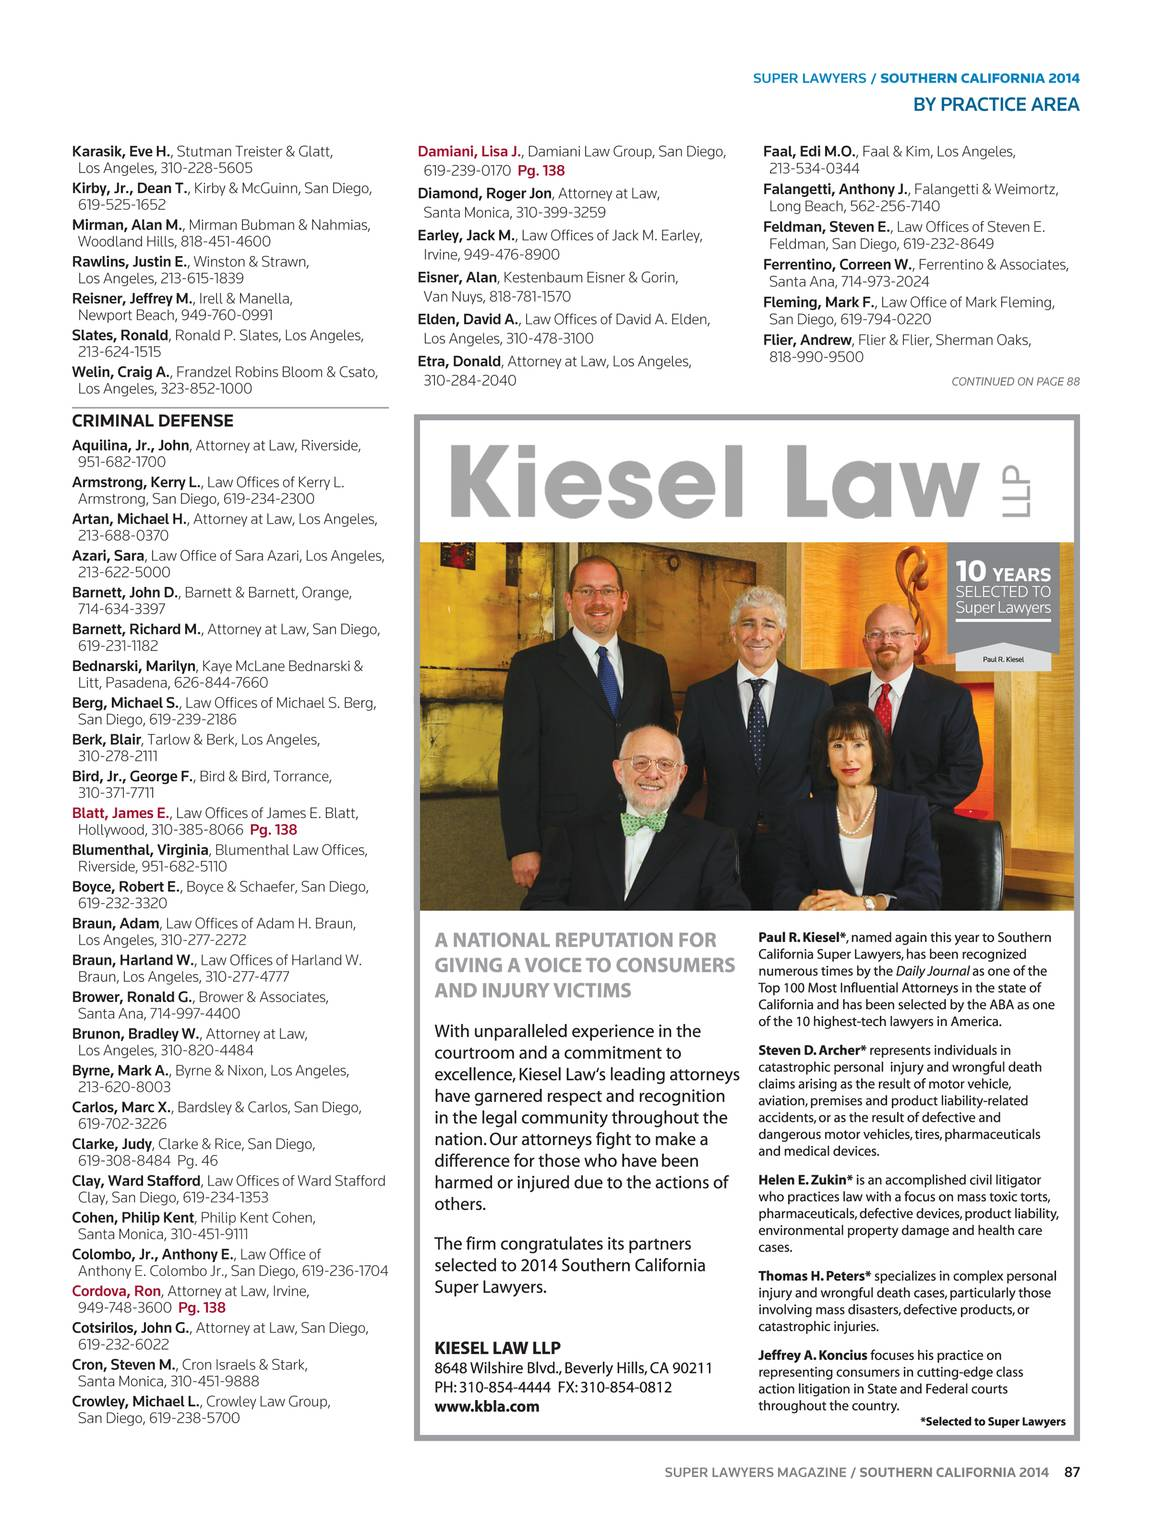 Super Lawyers - Southern California 2014 - page 88